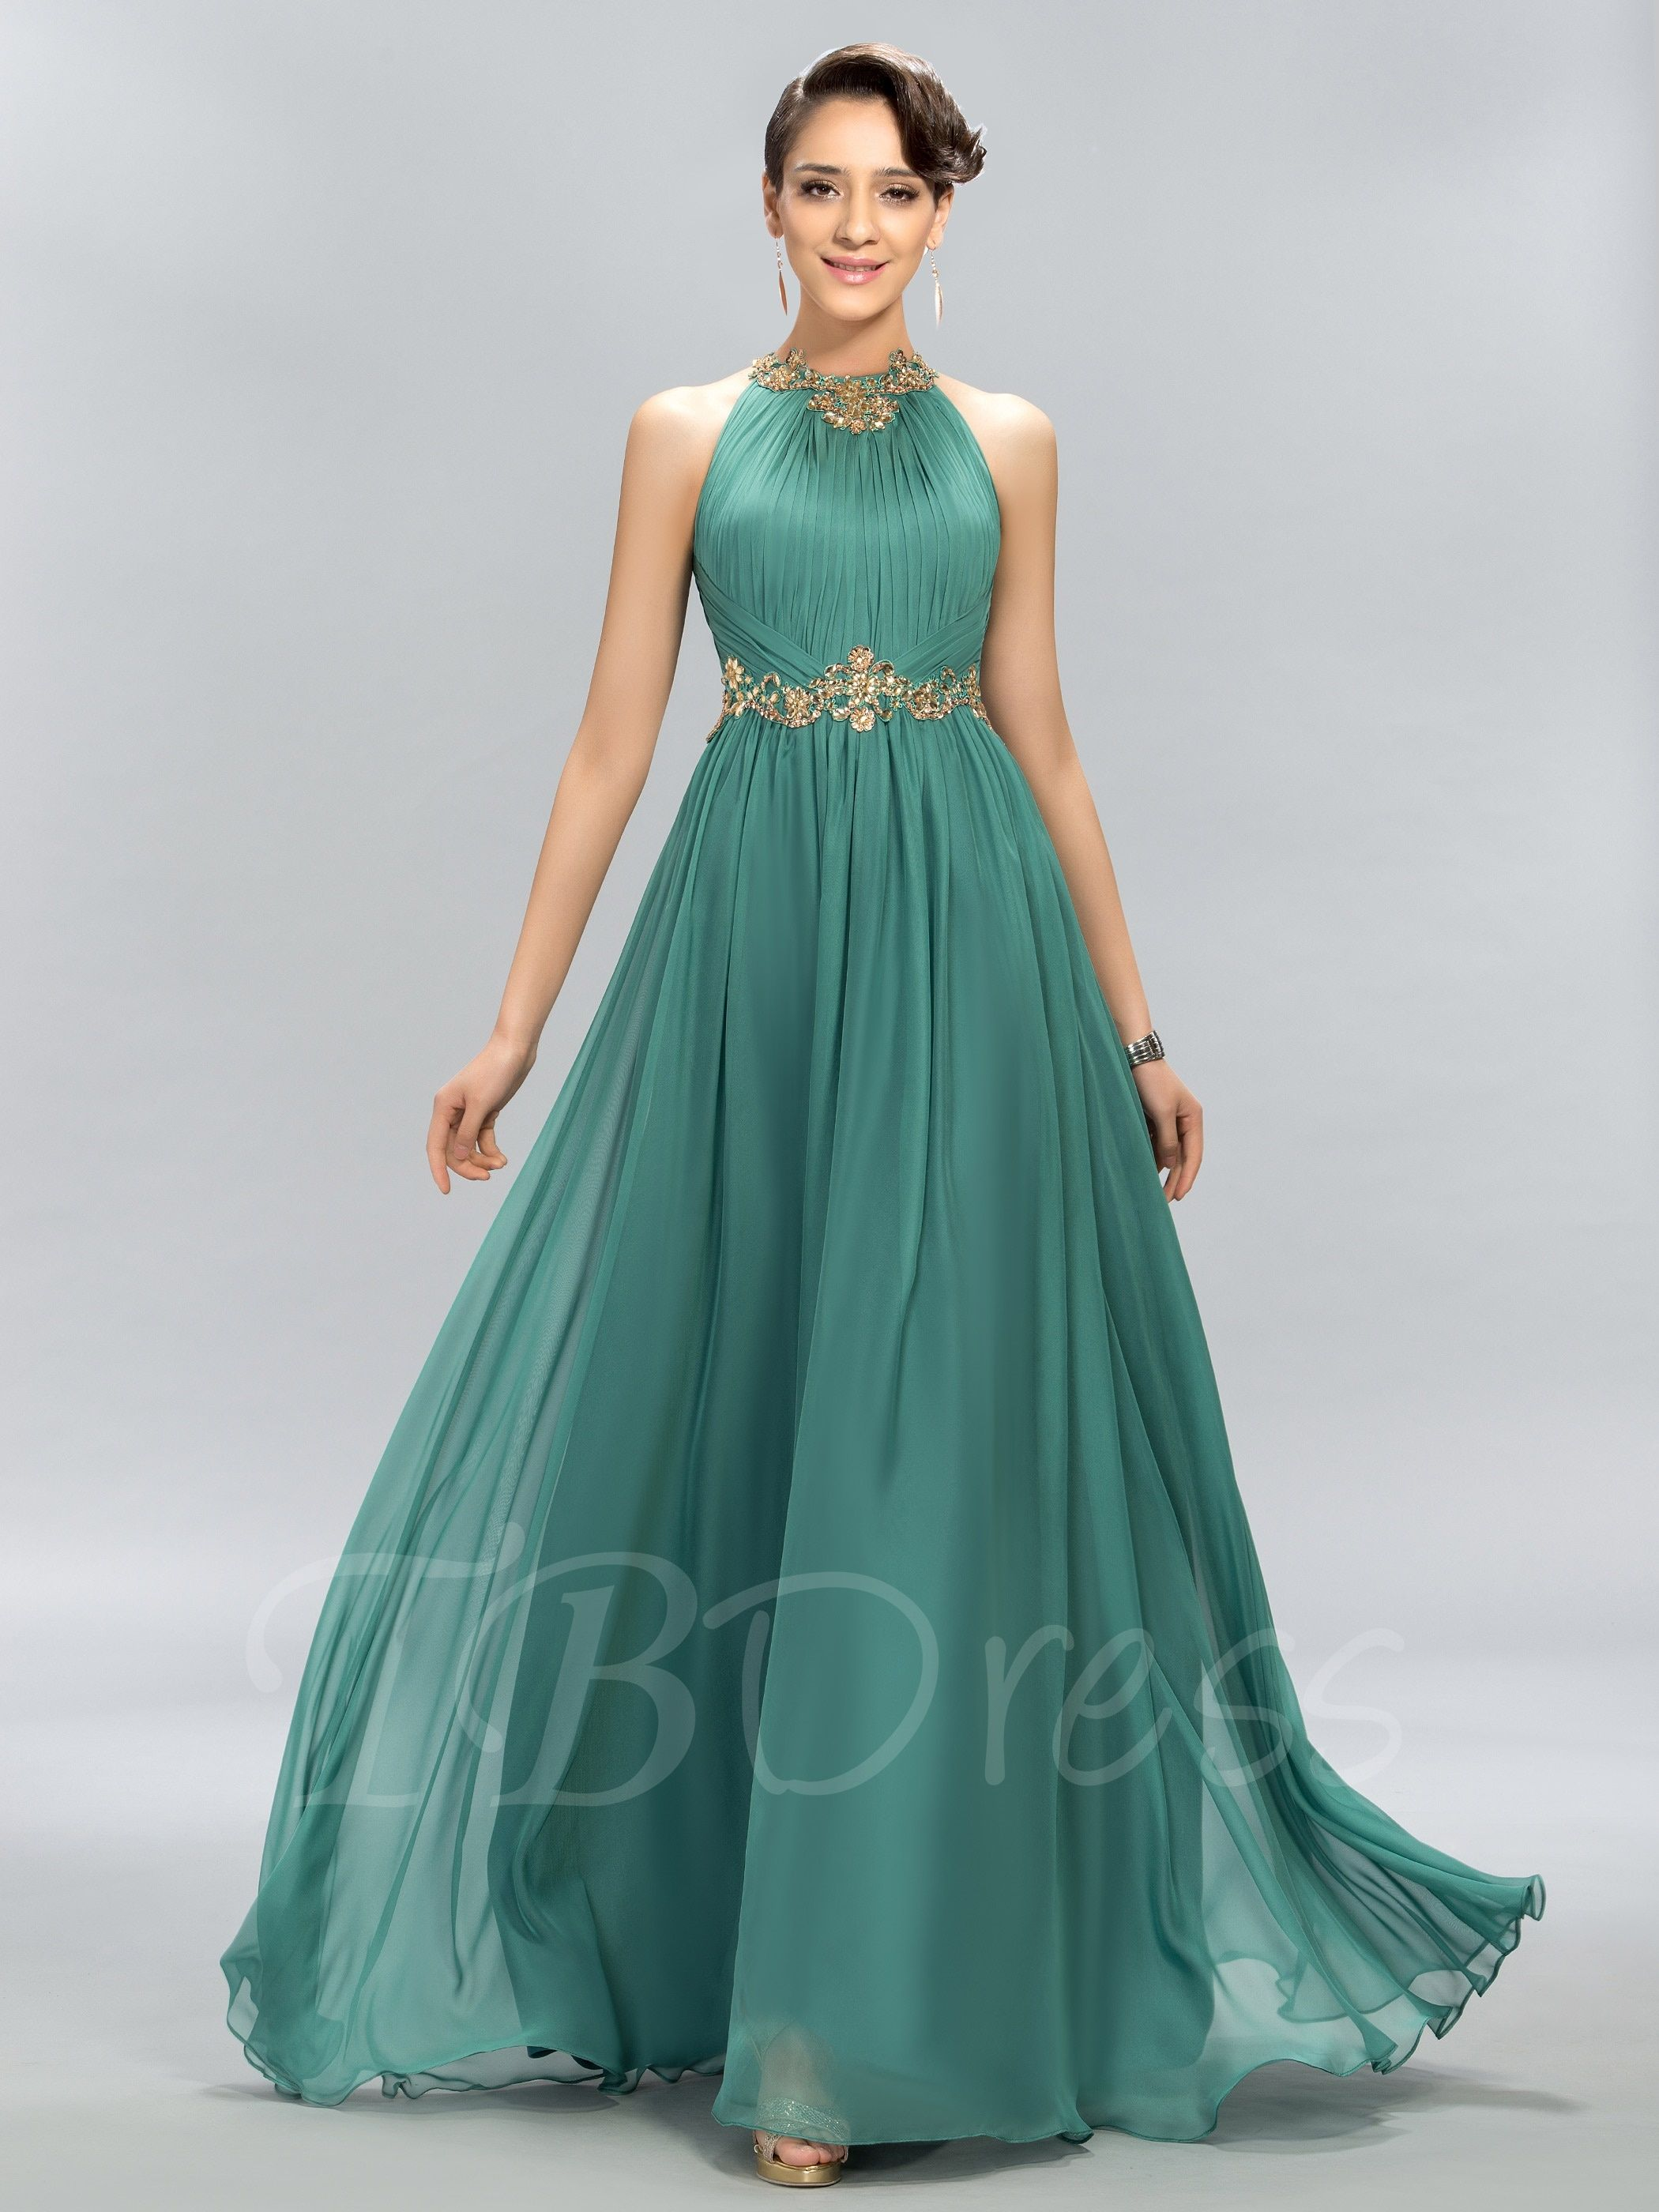 Tbdress.com offers high quality Ruched Jewel Beading A-Line Evening ...